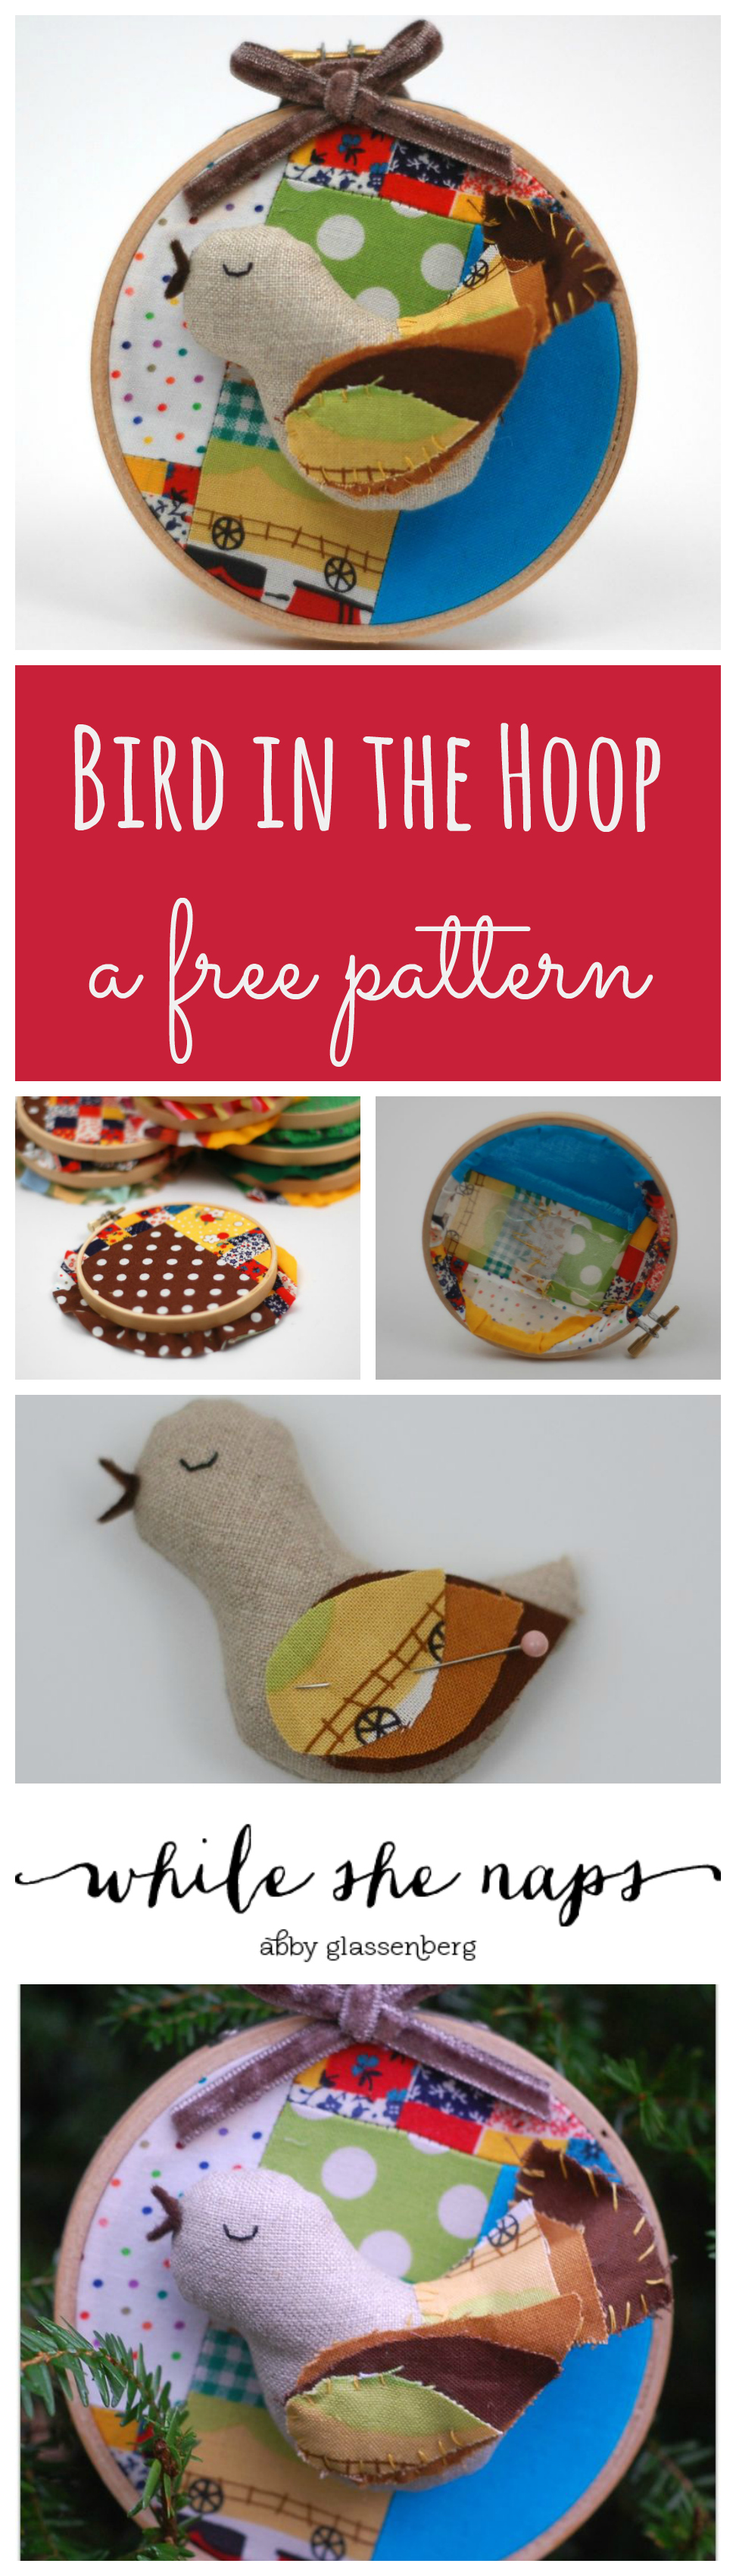 A free pattern for a Bird in the Hoop Ornament